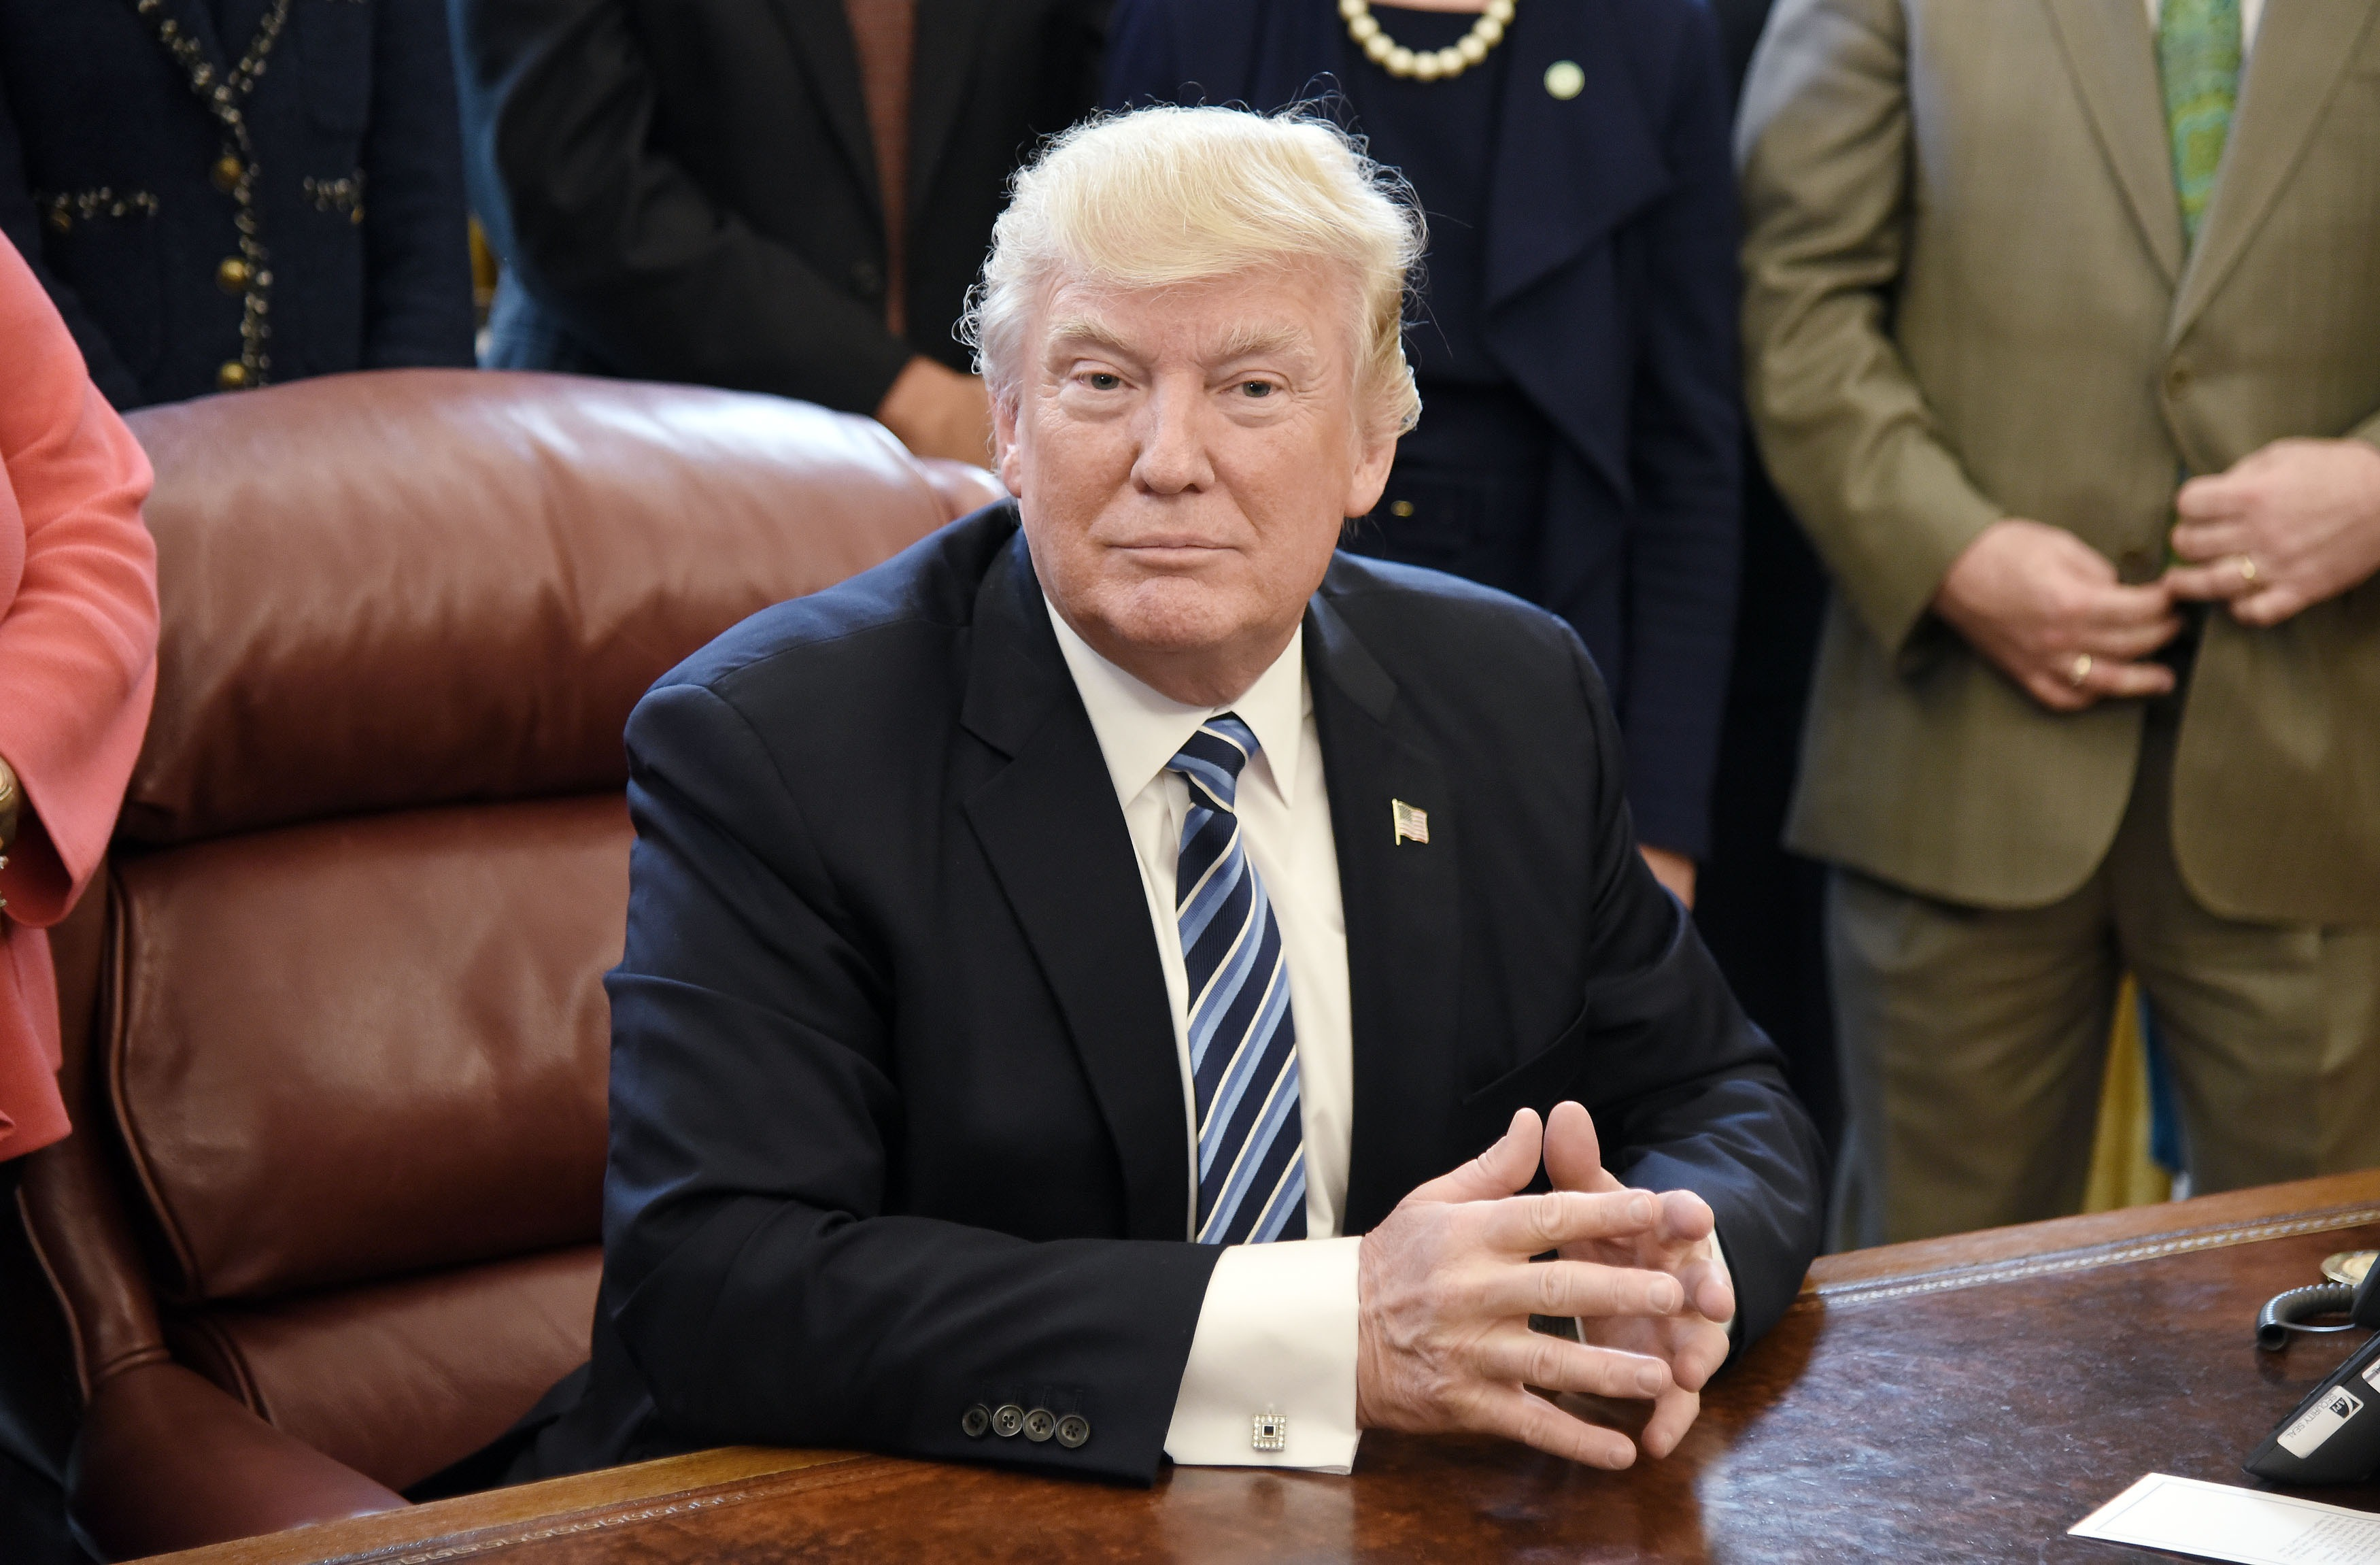 U.S. President Donald Trump looks on after signing a Memorandum on Aluminum Imports and Threats to National Security in the Oval Office on April 27, 2017 in Washington, DC.